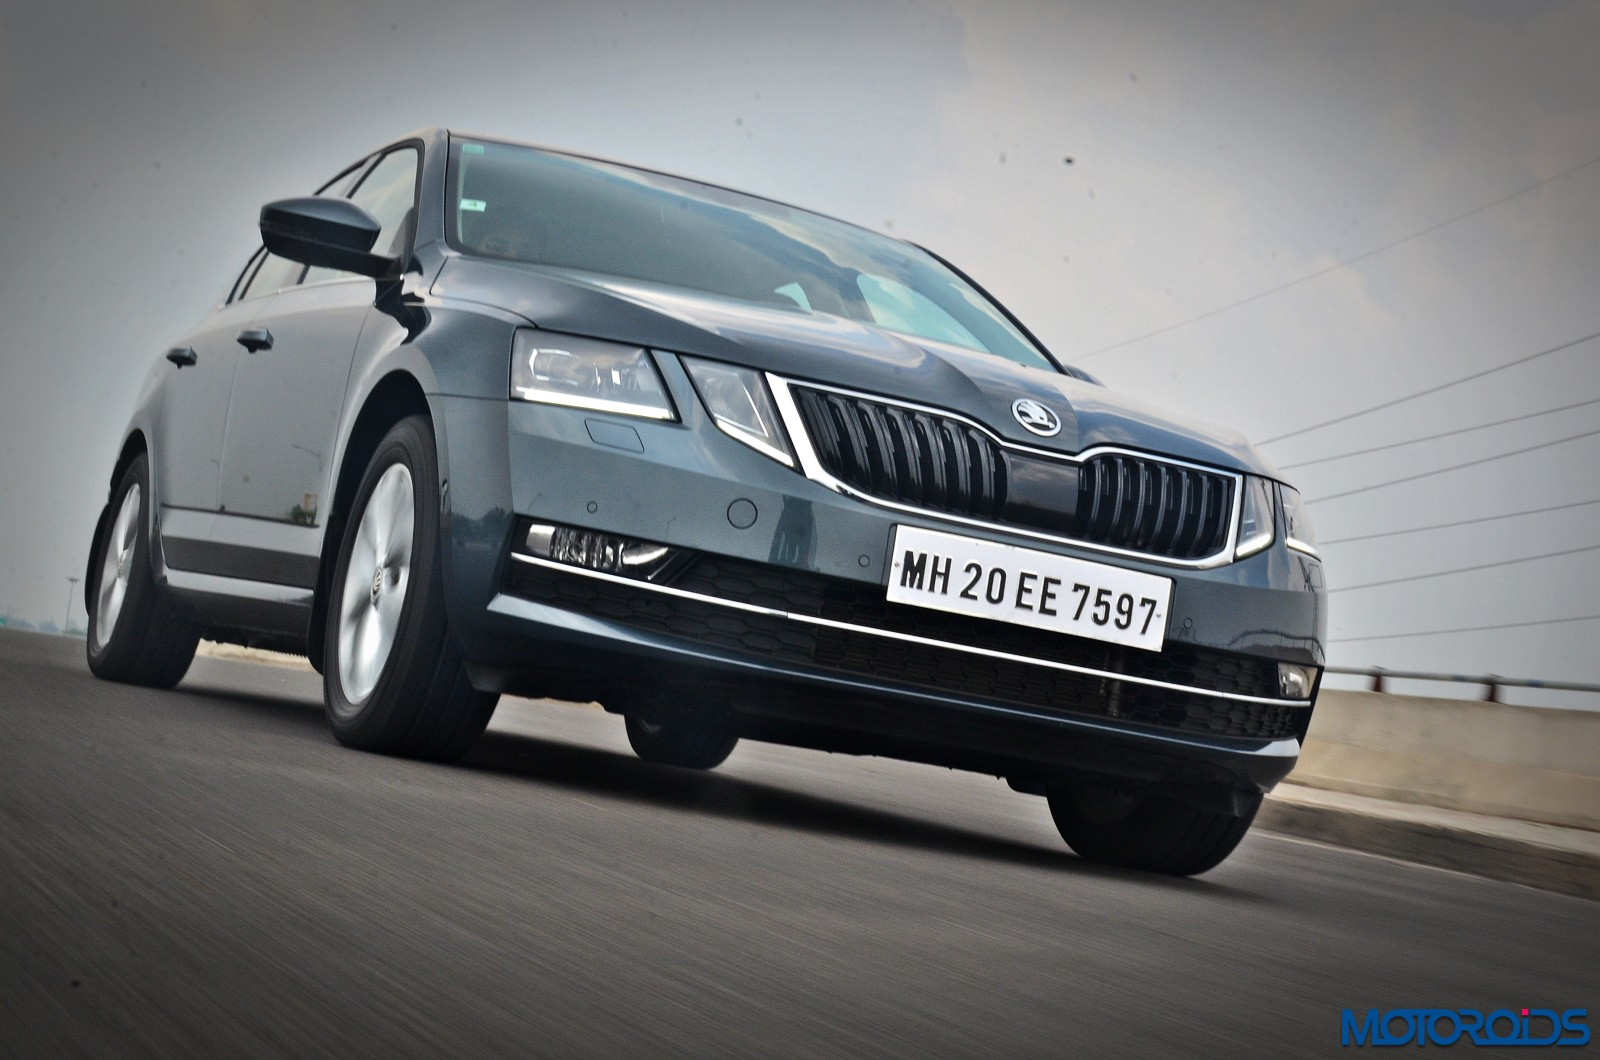 New-2017-Skoda-Octavia-Review-In-motion-pictures-3